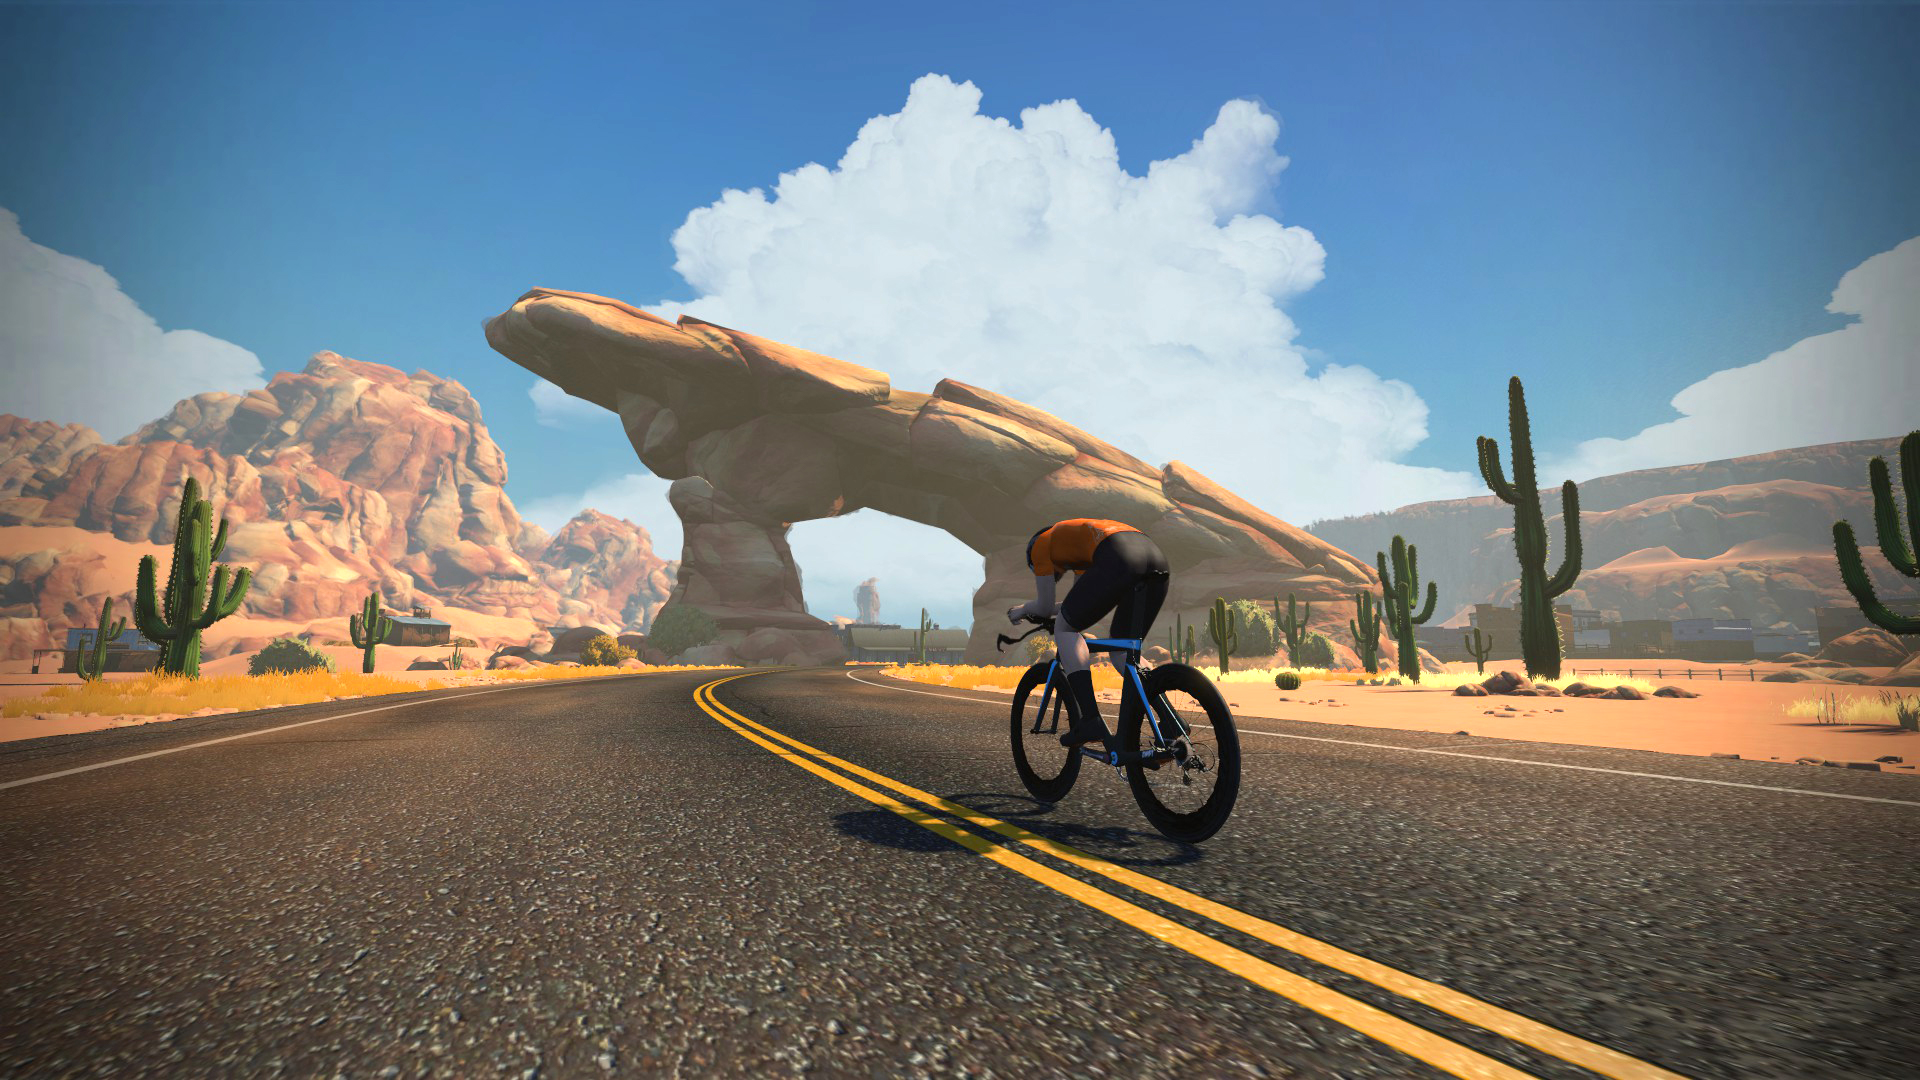 Zwift through the desert with Watopia Fuego Flats expansion route